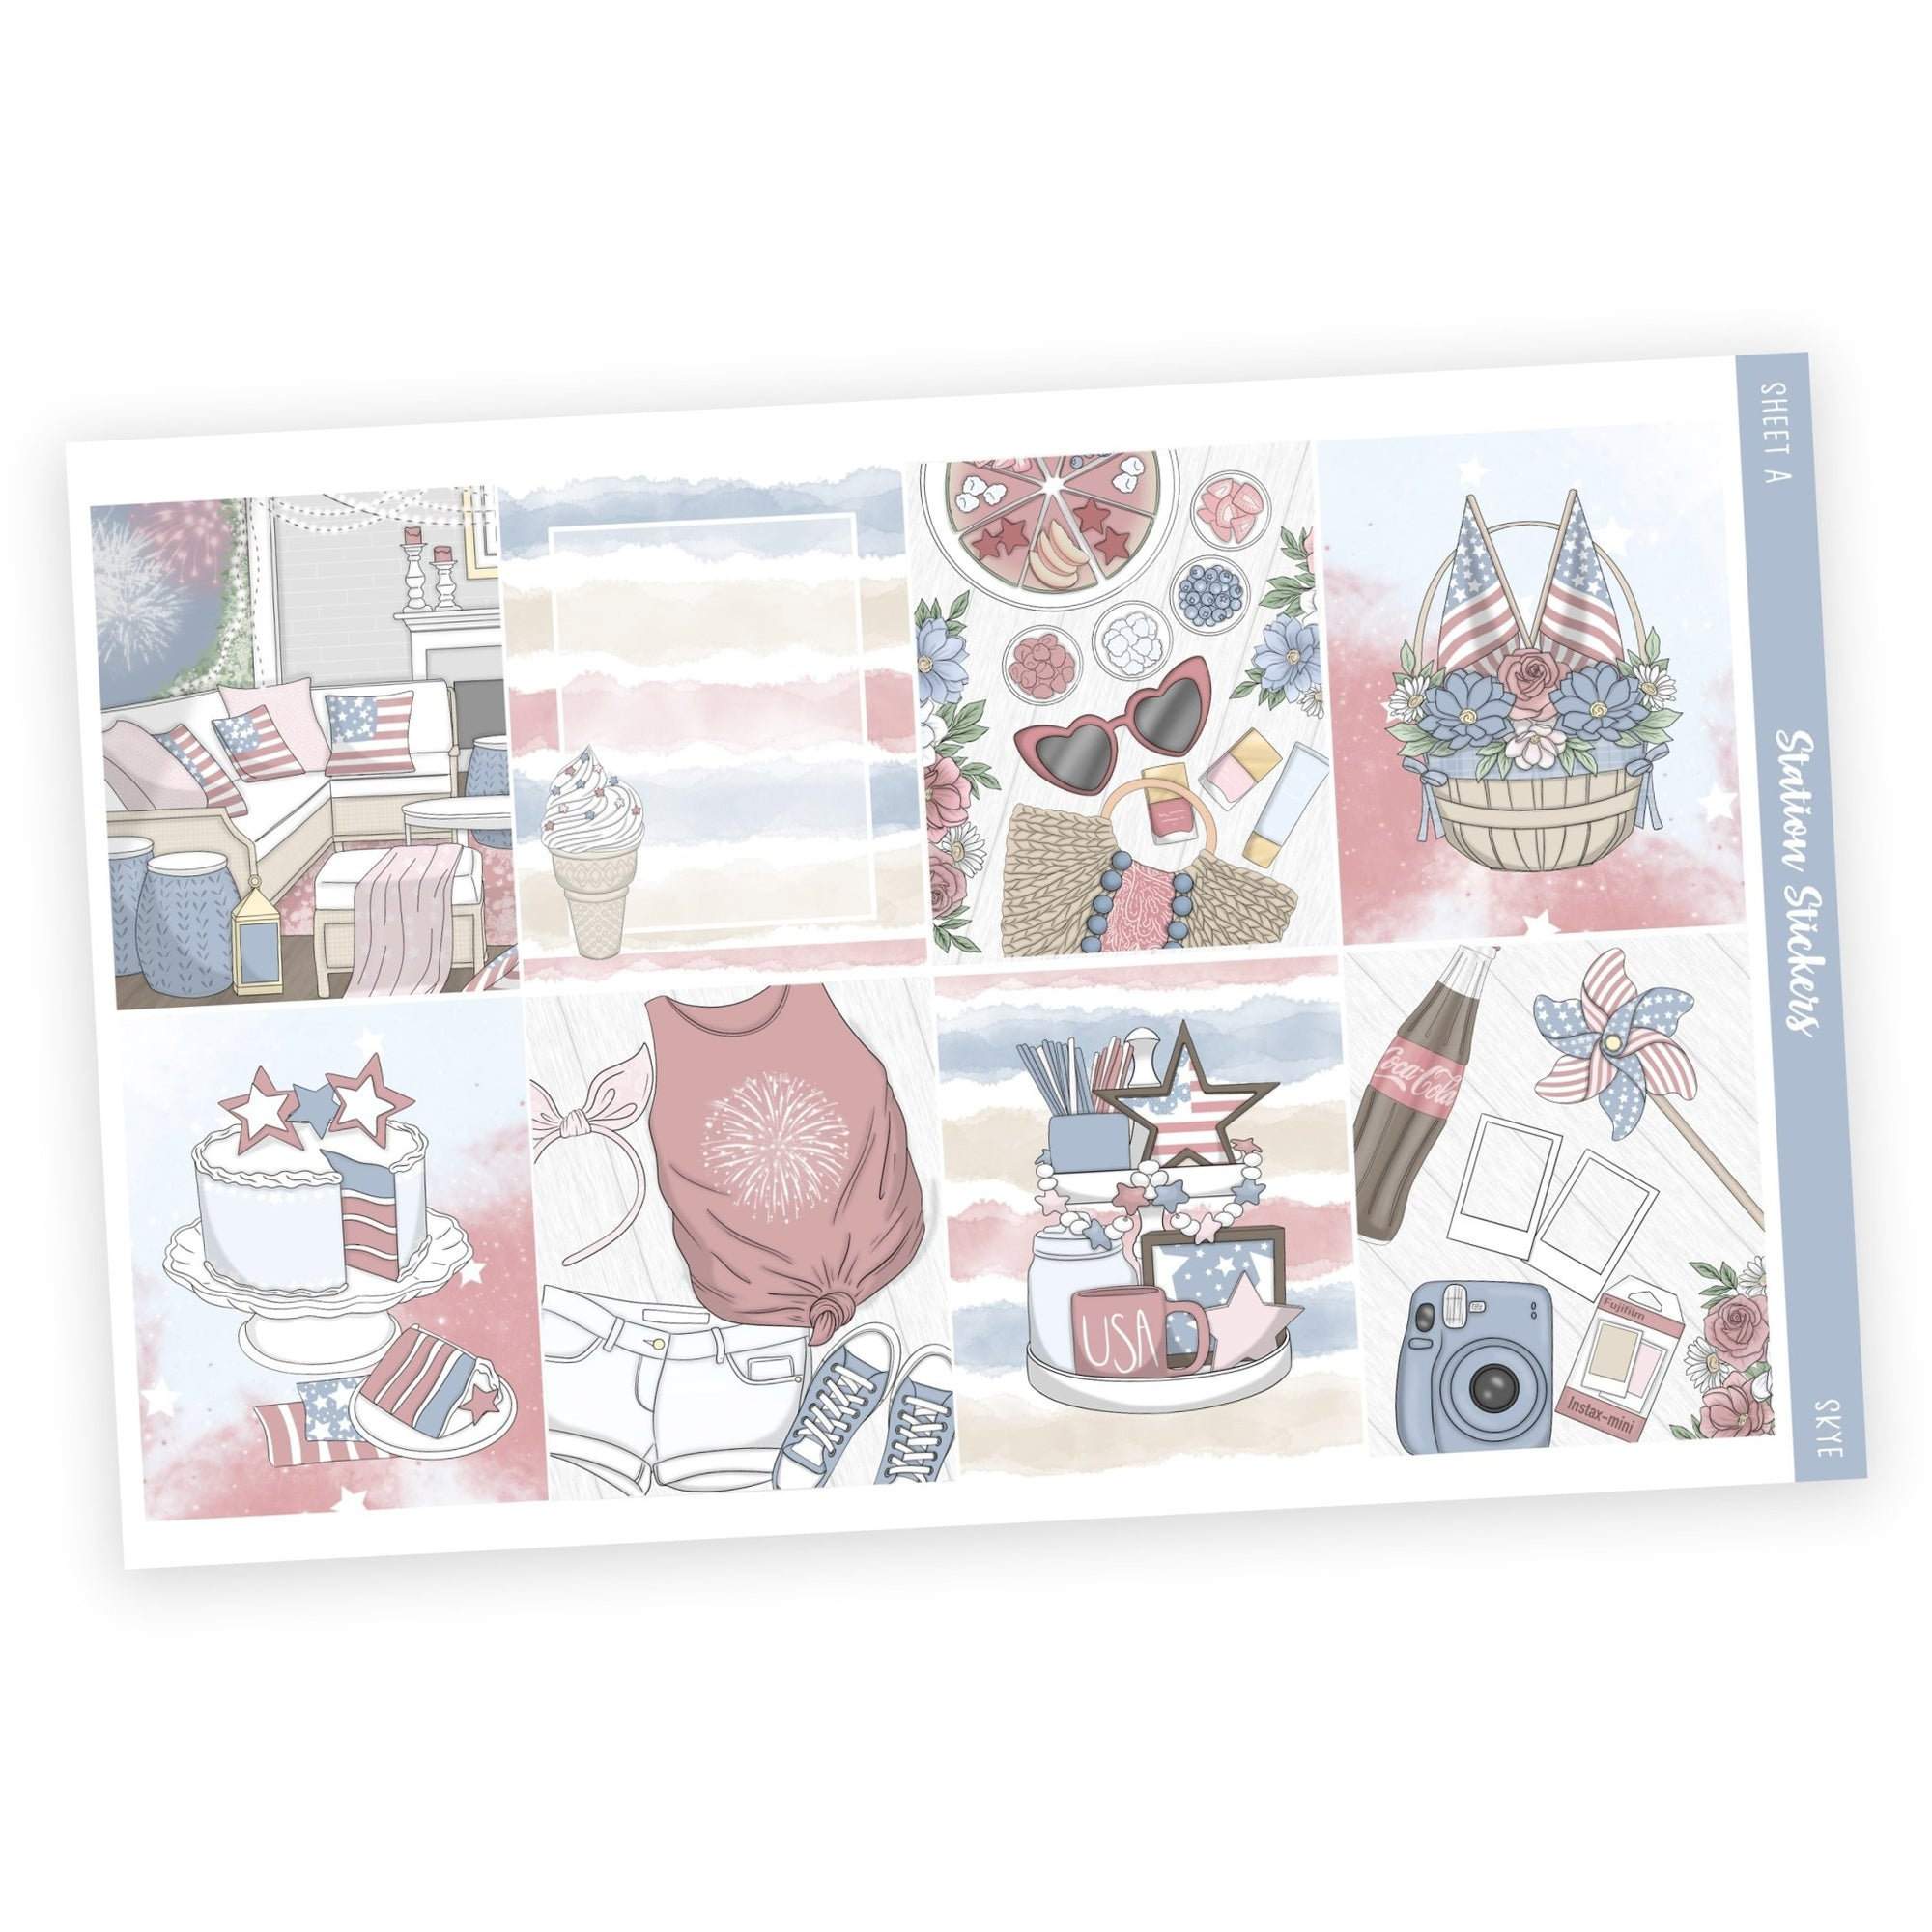 WEEKLY STICKER KIT • SKYE - Station Stickers